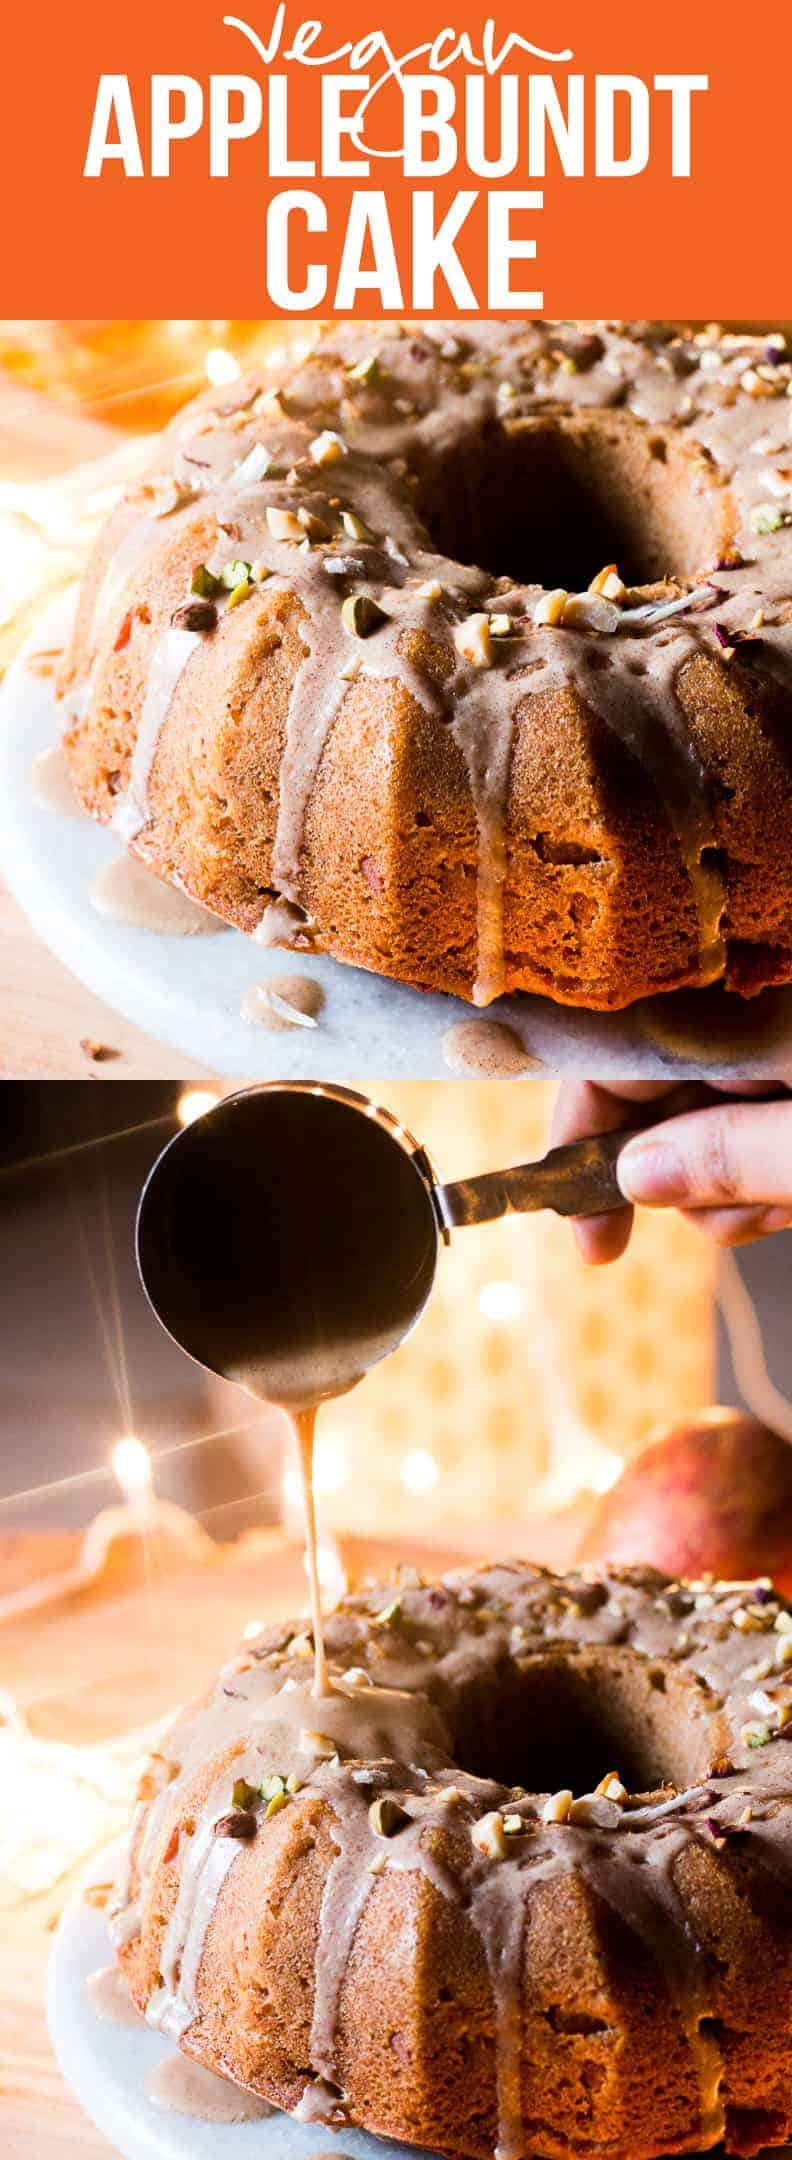 Garam Masala Eggless Apple Bundt Cake - easy, moist, spiced vegan cake made with fresh apples and glazed with a brown butter rum sauce.